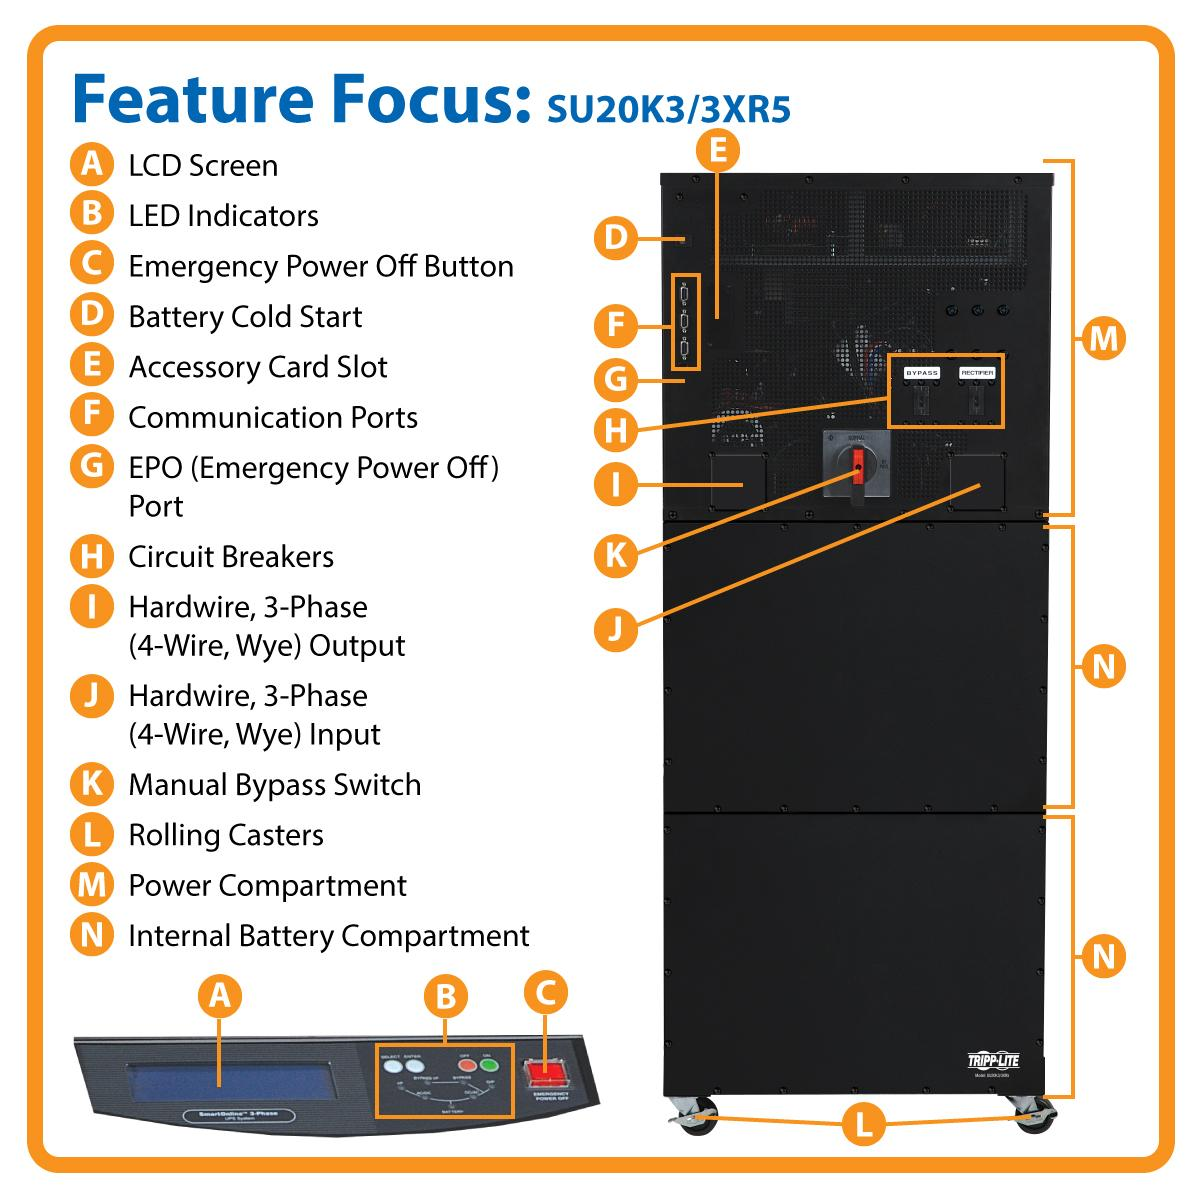 Tripp Lite Su20k3 3xr5 20000va Ups Smart Online Tower Apc 20kva 208v Wiring Diagram View Larger